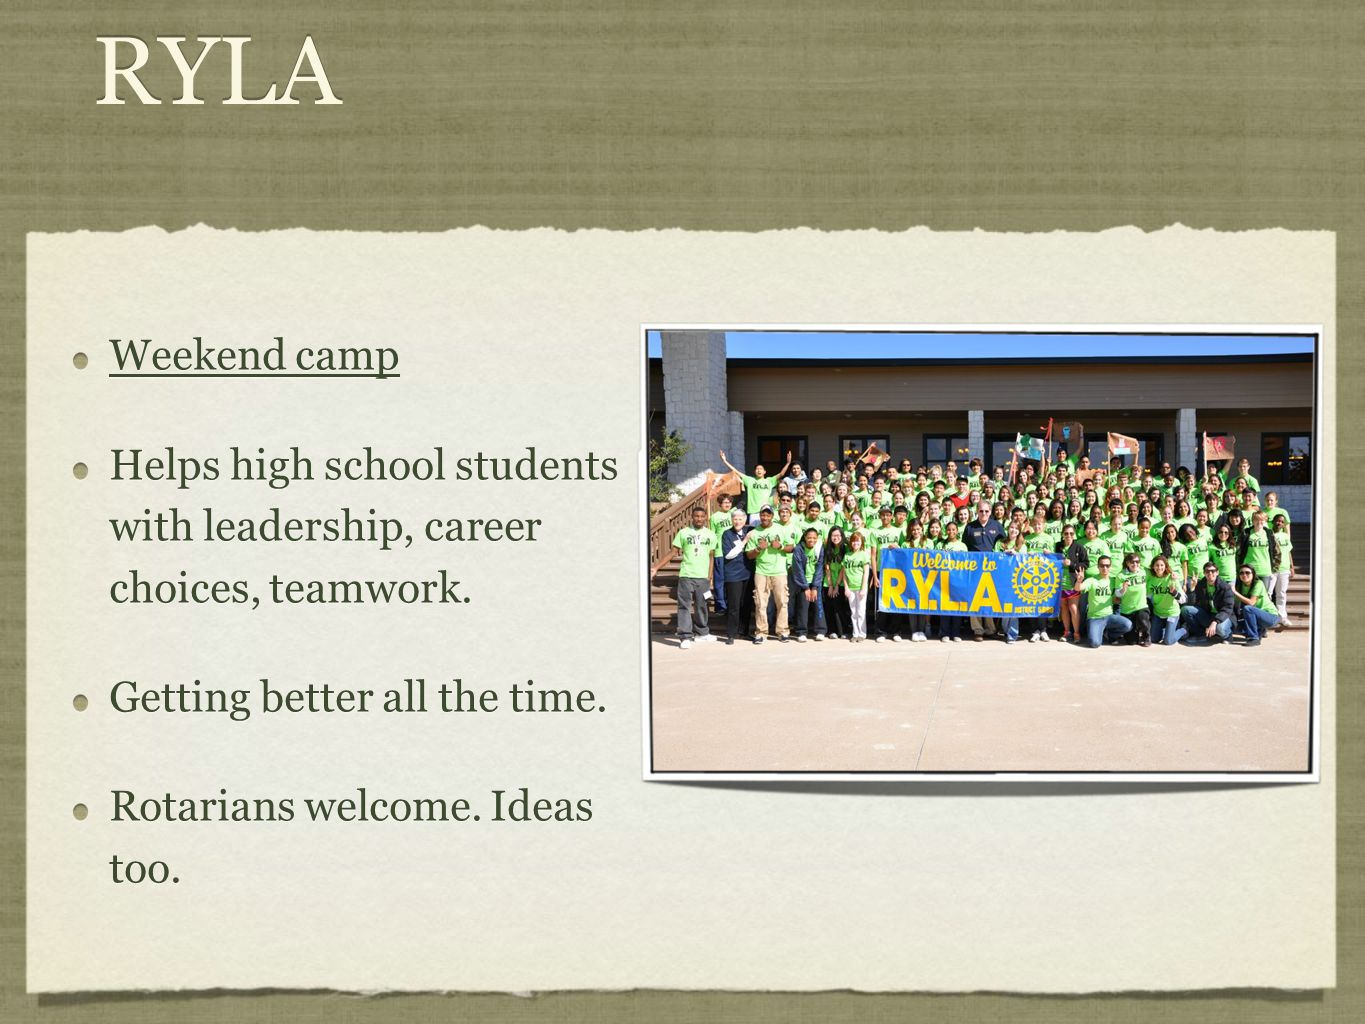 RYLA Weekend camp Helps high school students with leadership, career choices, teamwork. Getting better all the time. Rotarians welcome. Ideas too. Wee